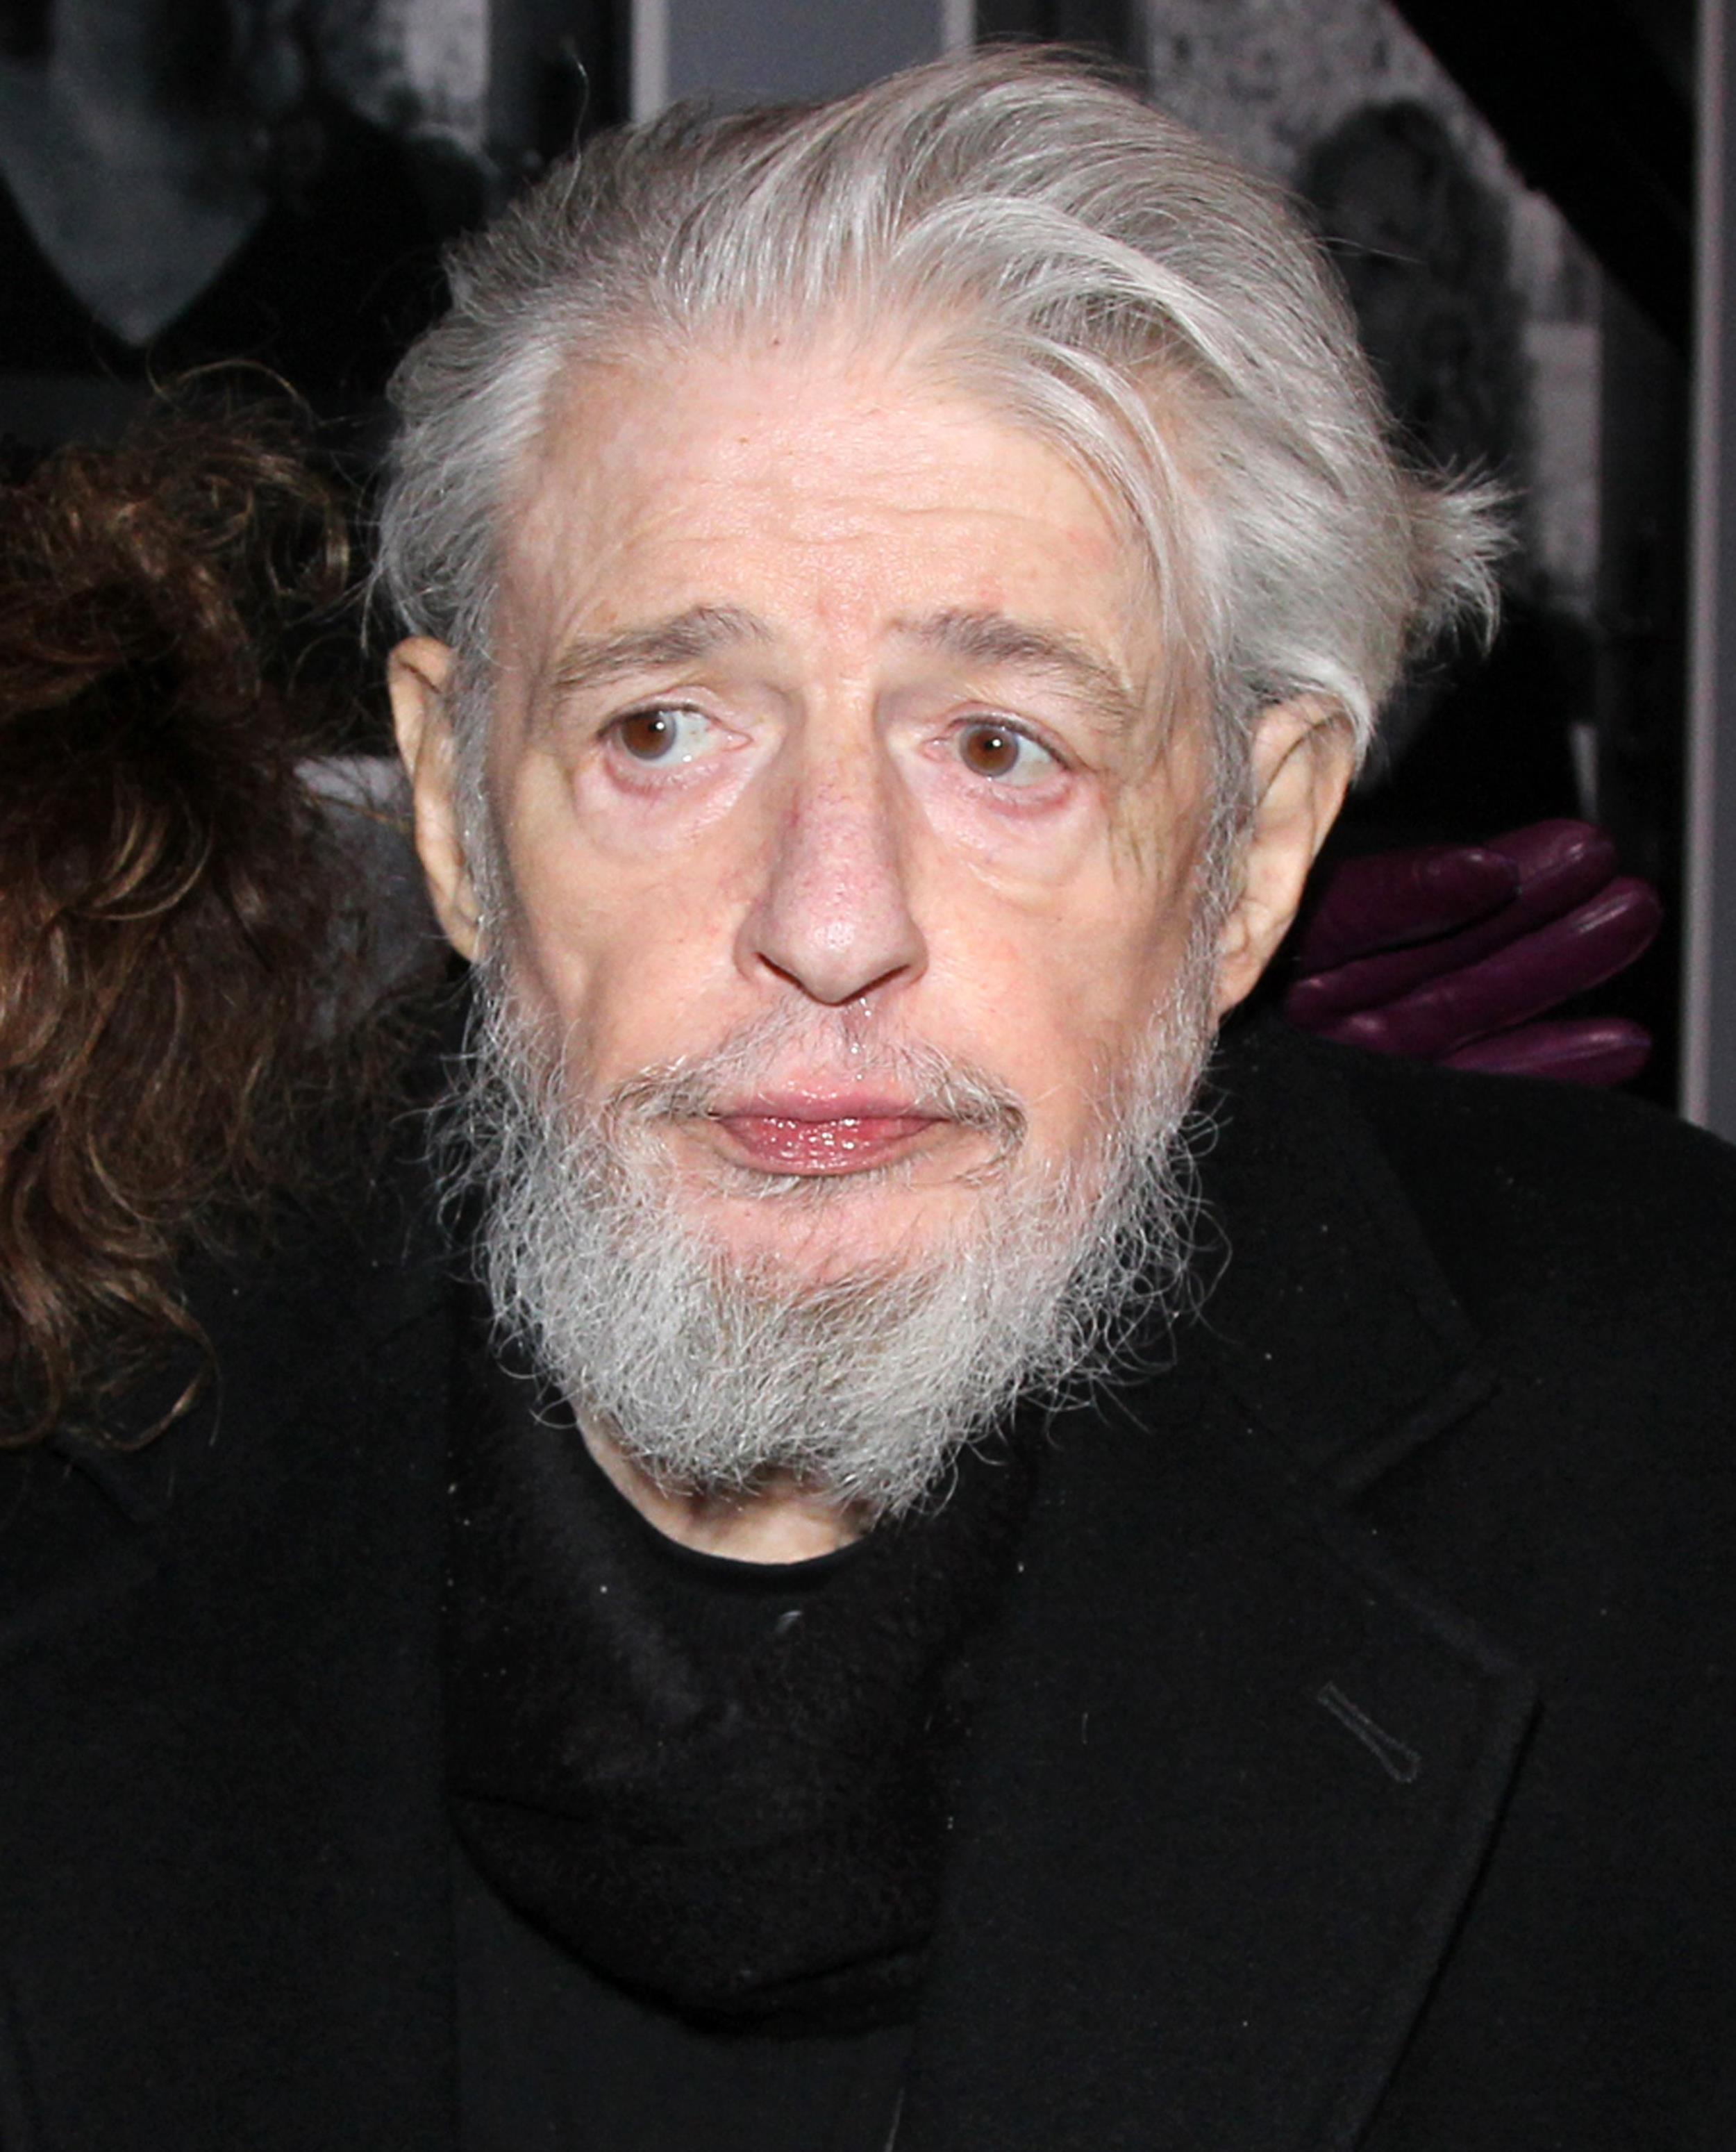 natural woman lyricist gerry goffin dies at 75   nbc news